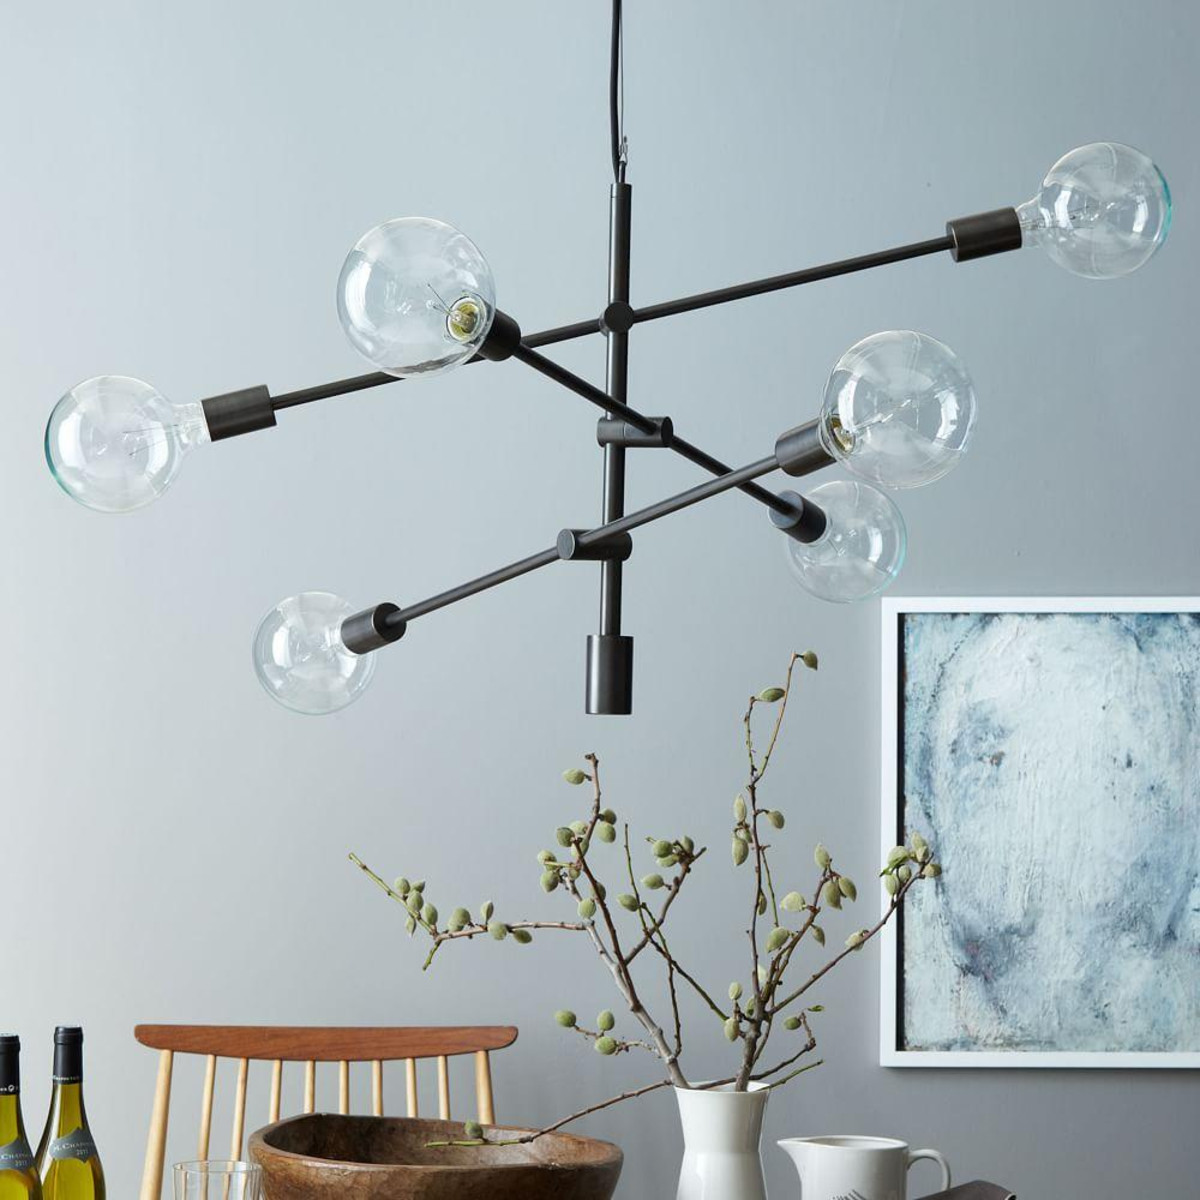 Modern Interior Lighting Design with West Elm Chandelier: West Elm Chandelier | Modern Round Crystal Chandelier | Pottery Barn Ceiling Light Fixtures